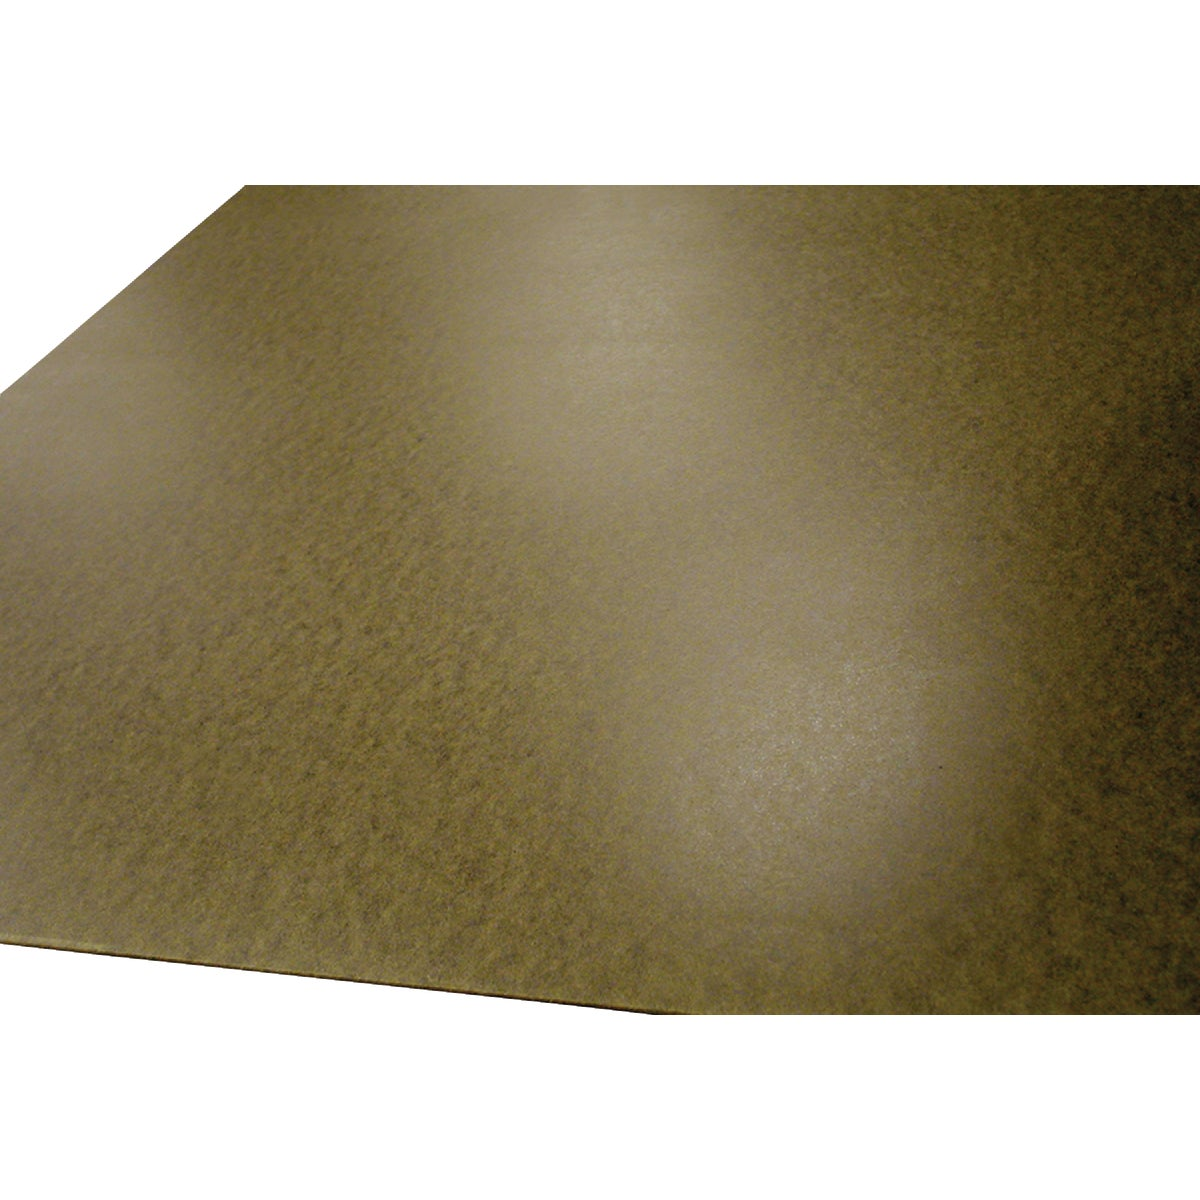 "1/8"" TEMPERED HARDBOARD - TS125 by Dpi Decorative Panel"